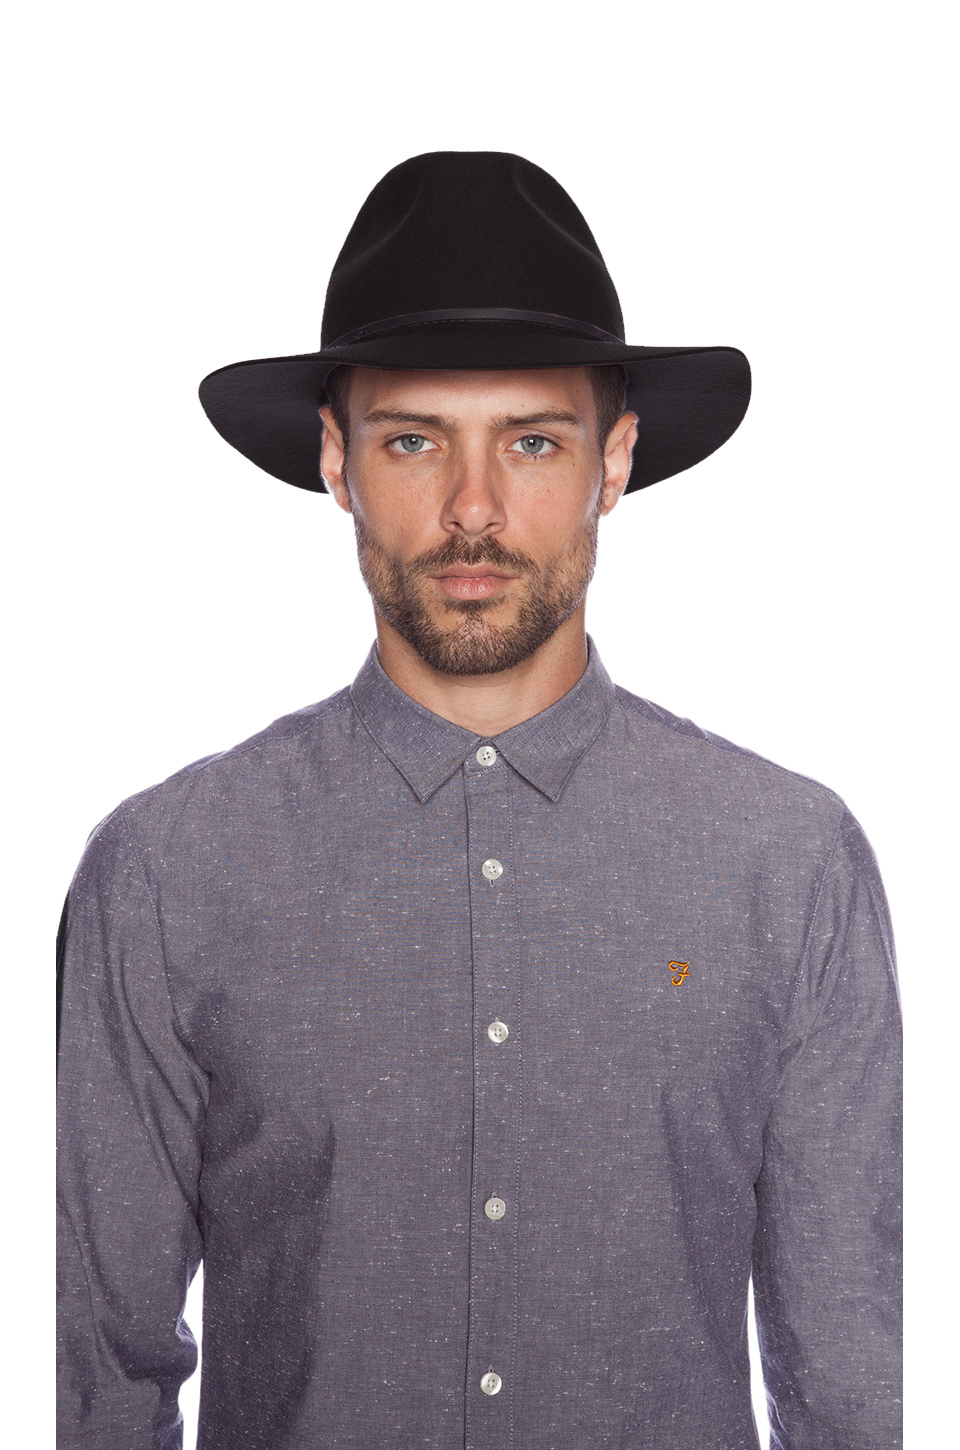 79d2ef1f671 Fashion 100% Wool Summer Women s Men s Crushable Genuine Felt Fedora Bush  Sun Hat Trilby Gorra Toca Sombrero with leather band-in Fedoras from  Apparel ...